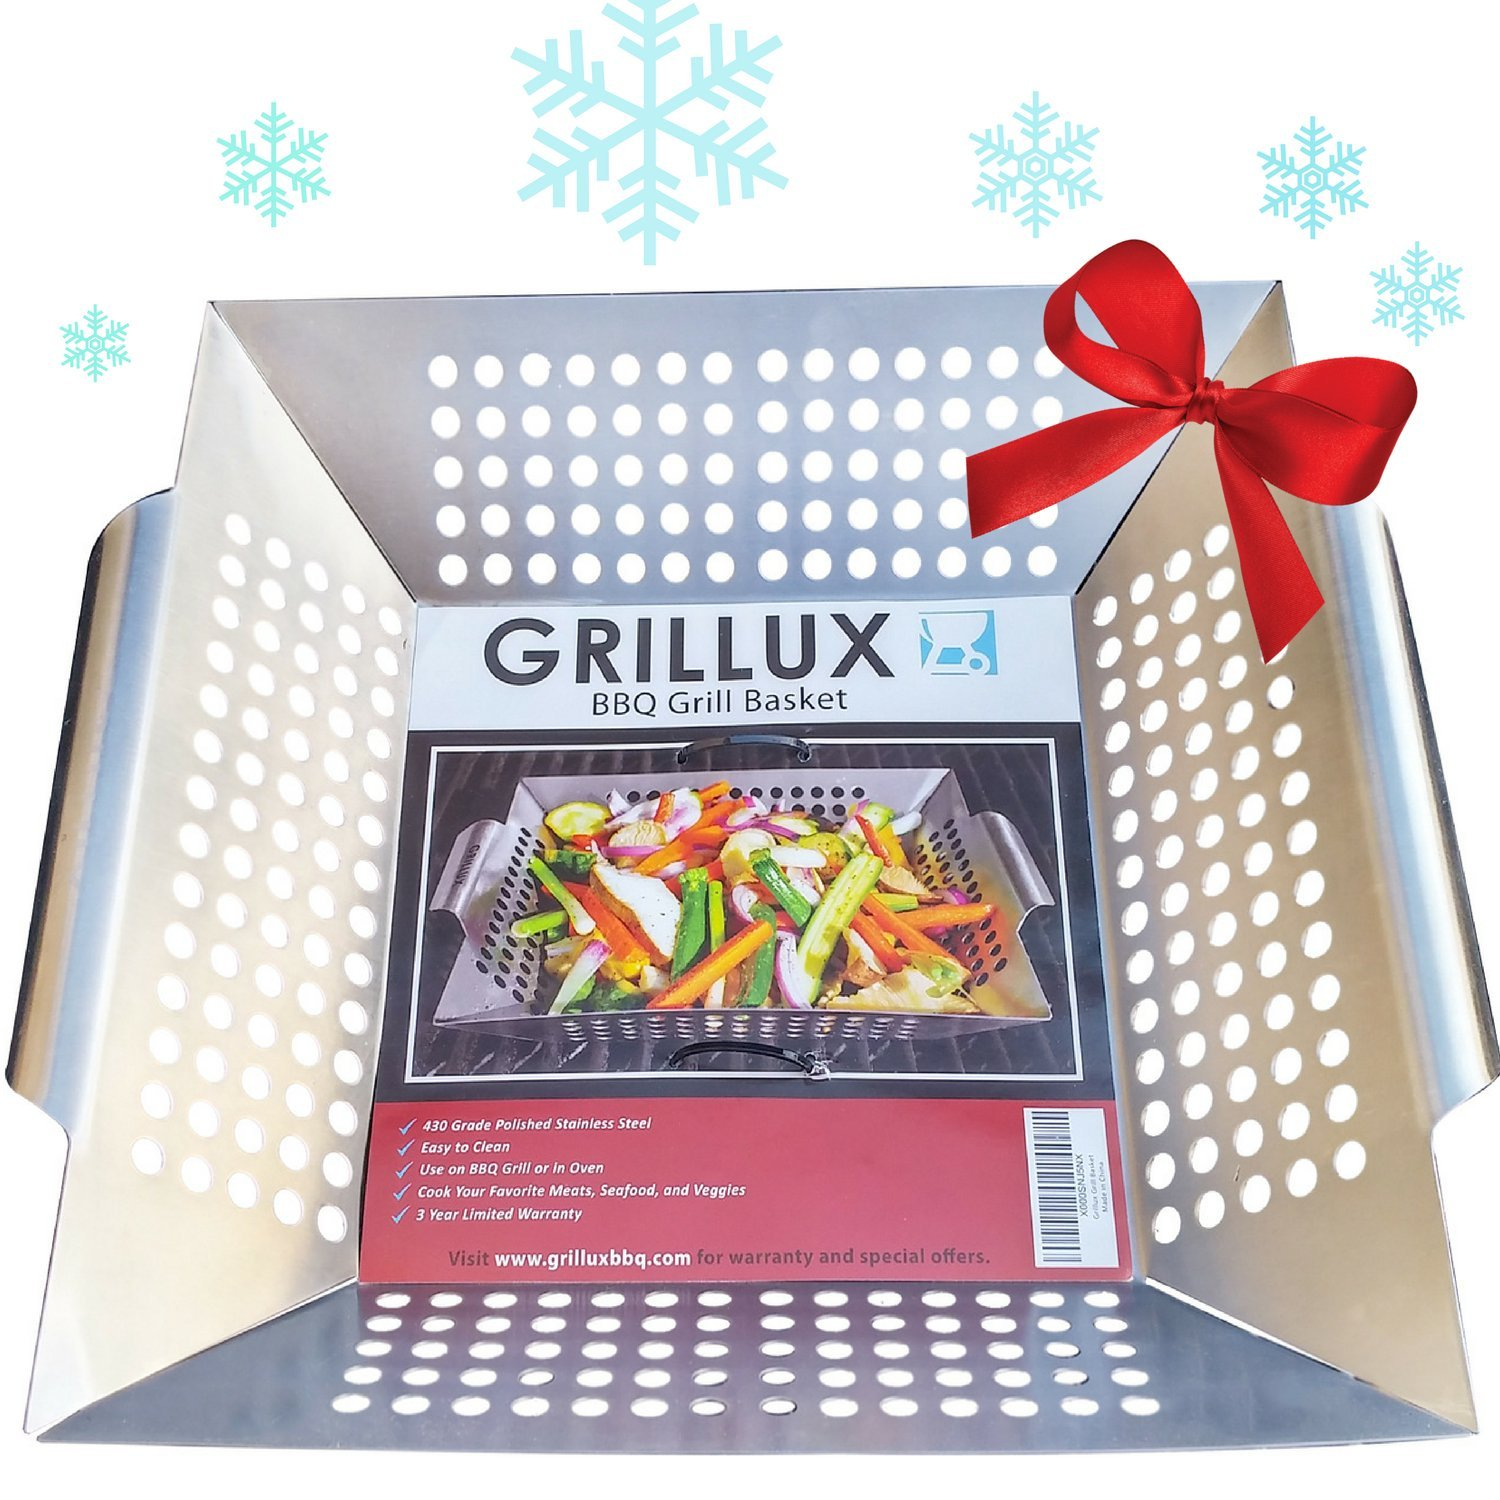 #1 BEST Vegetable Grill Basket - BBQ Accessories for Grilling Veggies, Fish, Meat, Kabob, or Pizza - Use as Wok, Pan, or Smoker - Quality Stainless Steel - Camping Cookware - Charcoal or Gas Grills OK by Grillux